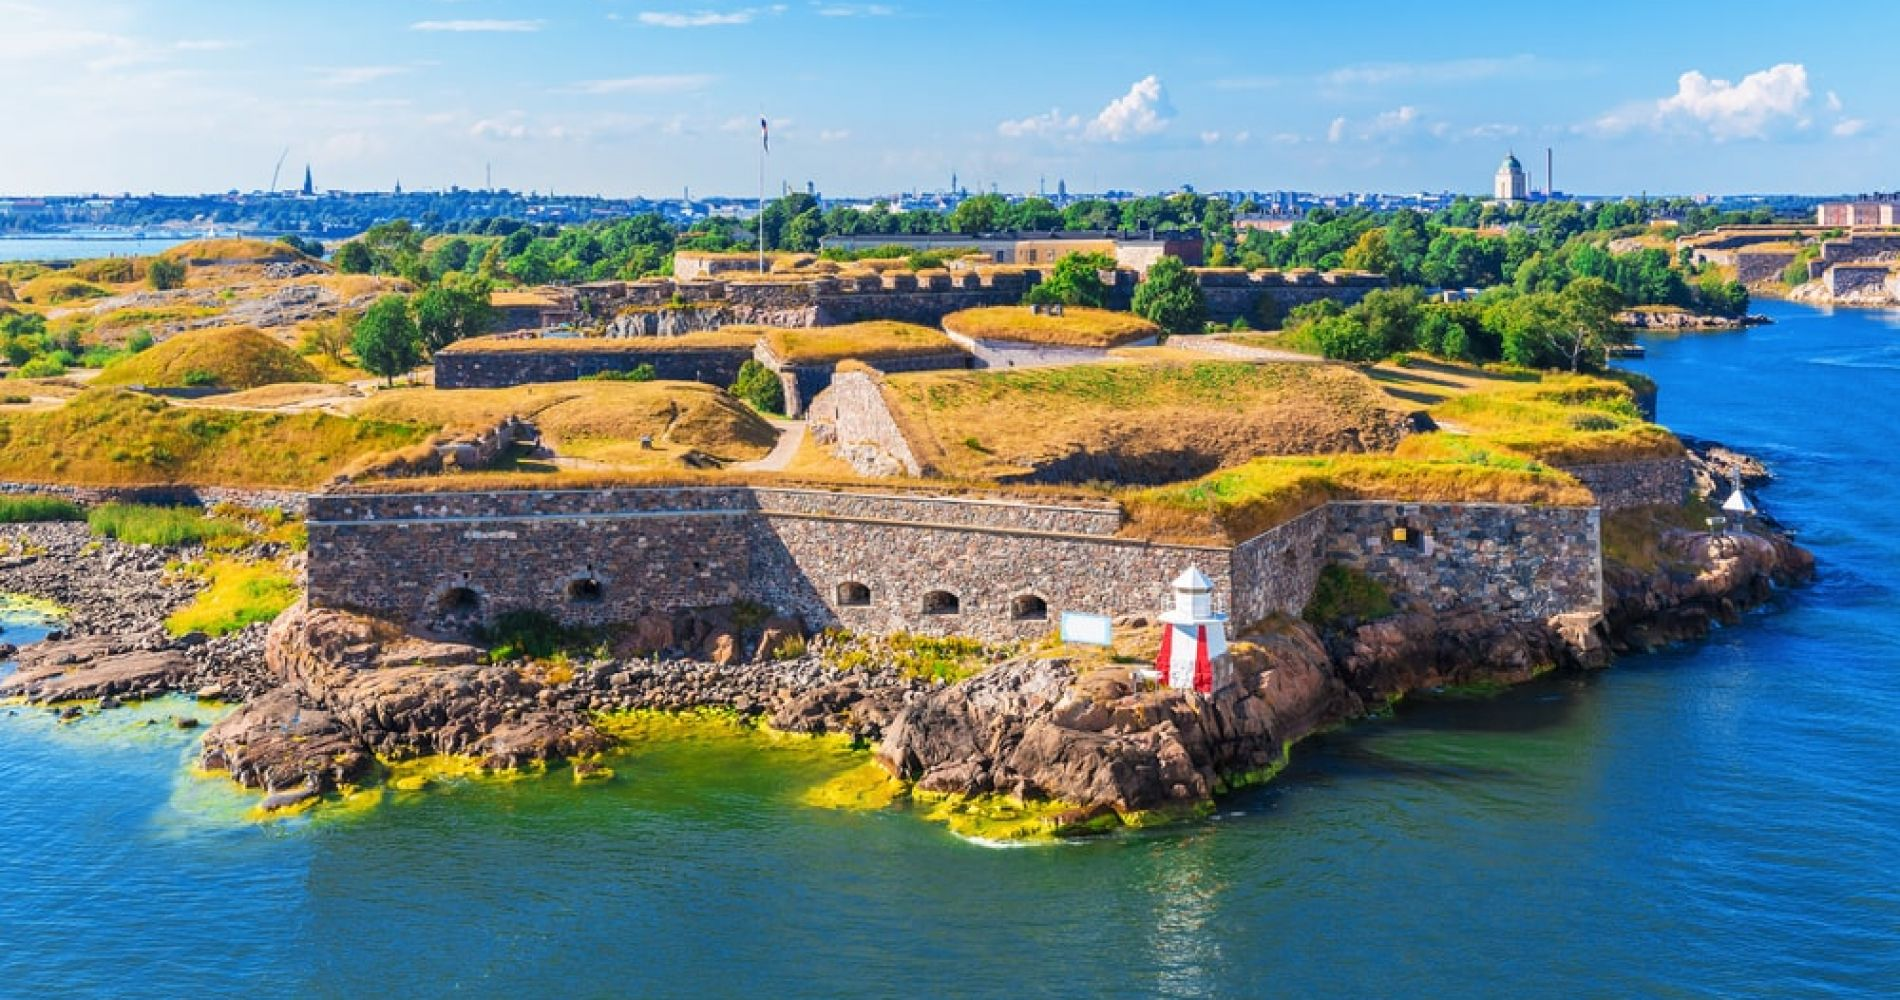 Helsinki & Suomenlinna Sightseeing Day Tour for Two